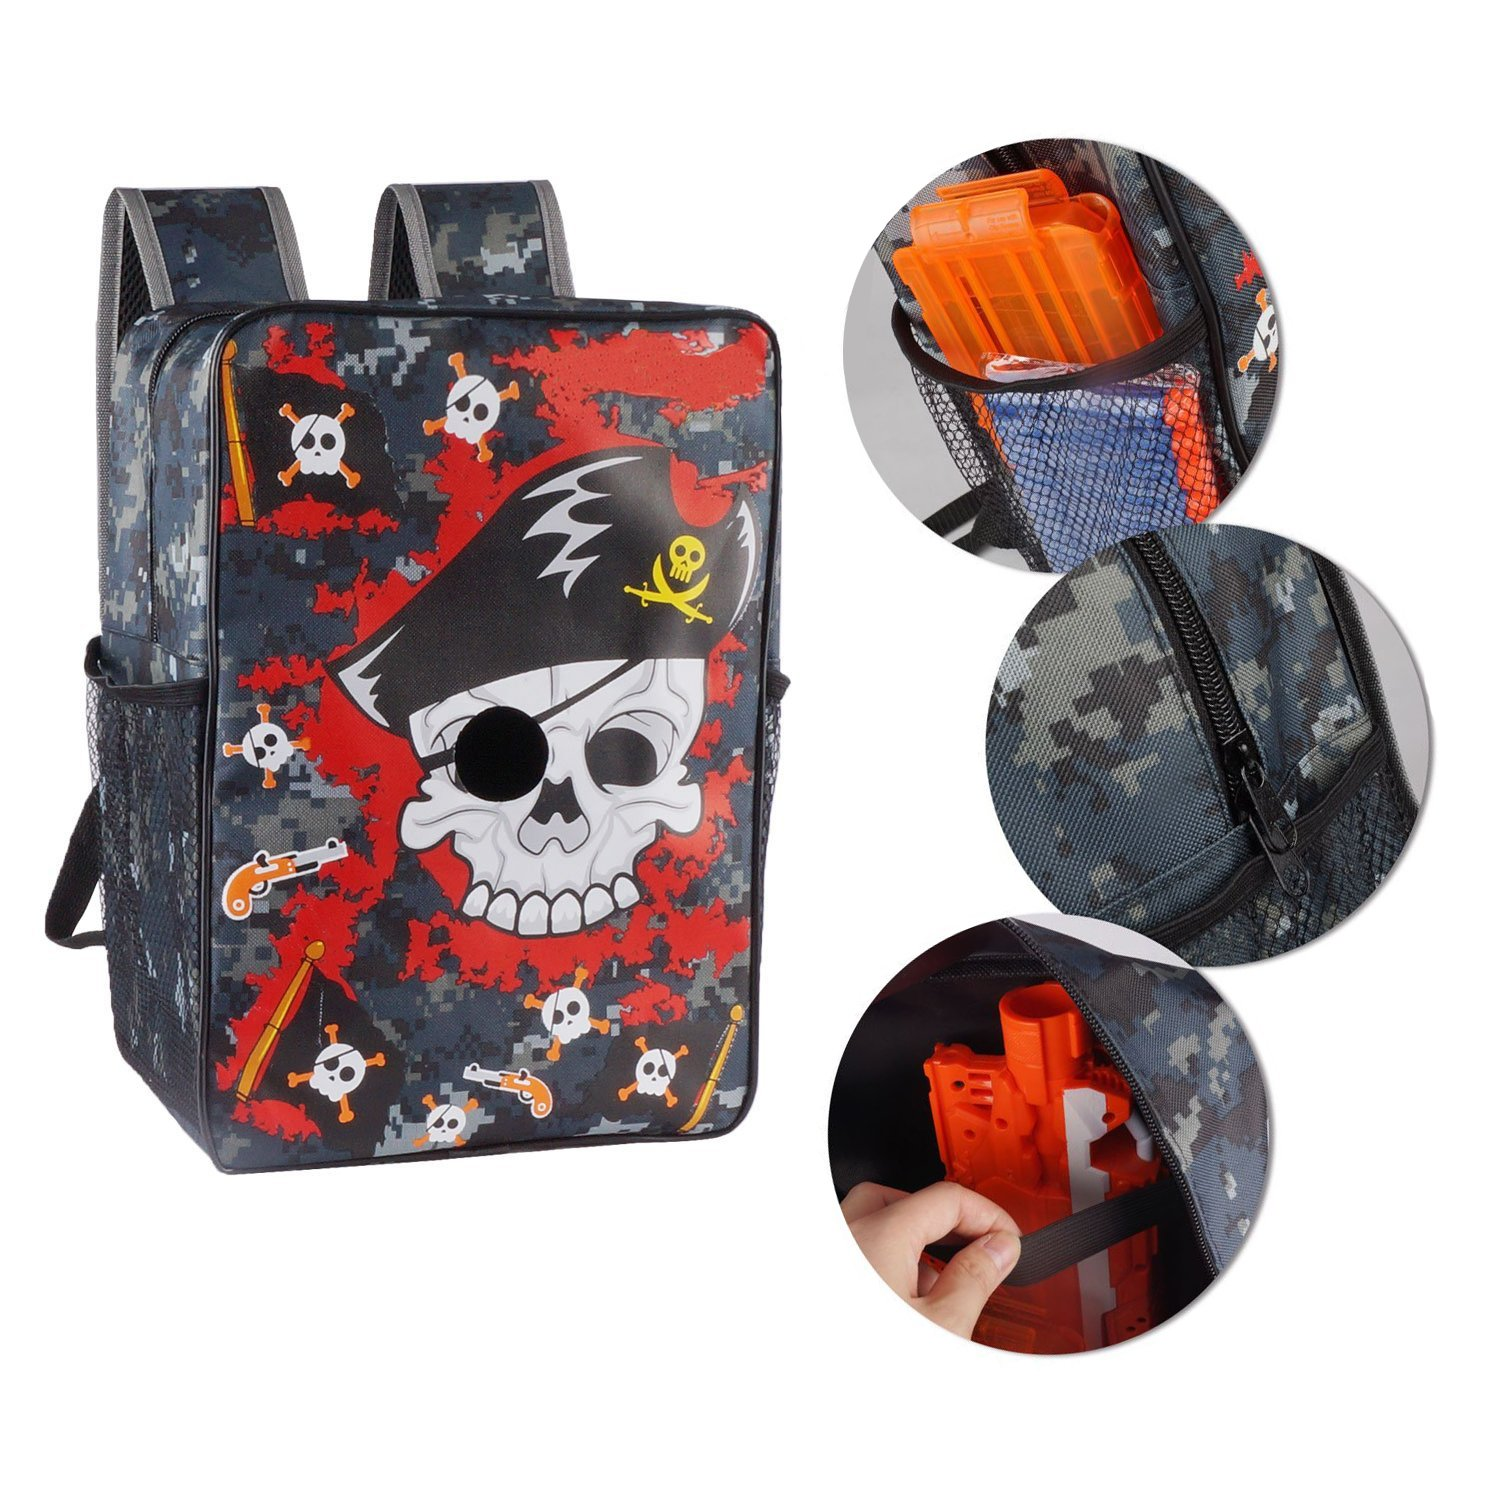 EKIND Target Pouch Storage Pirate Carry Backpack Bag Compatible for Nerf N-Strike Elite | Mega | Rival Series by EKIND